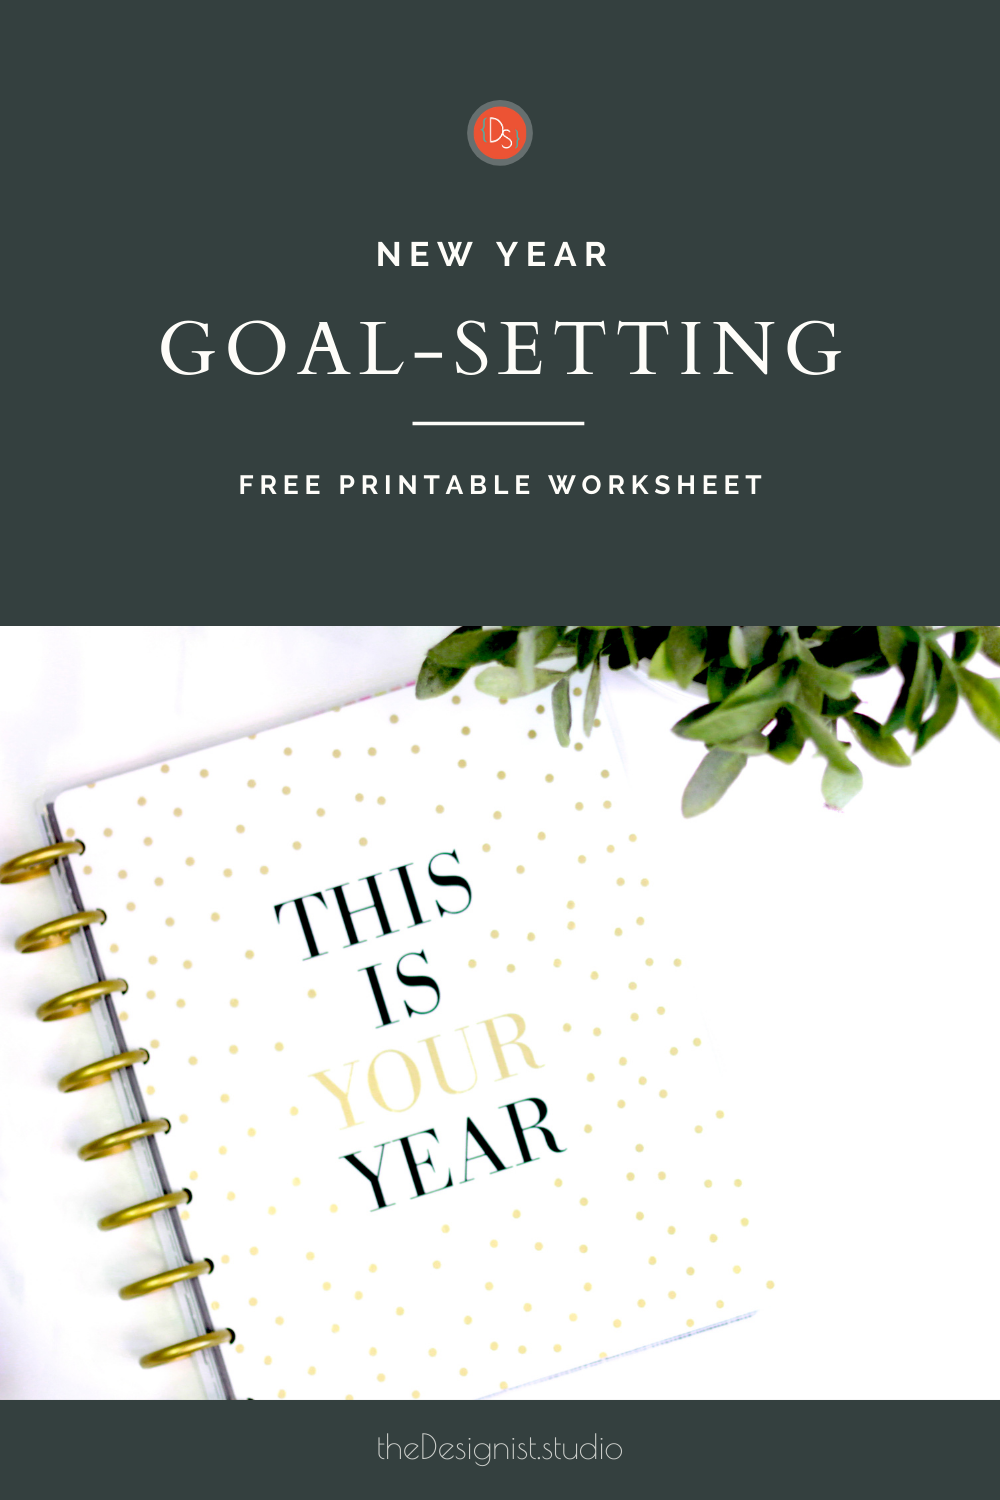 Kick off 2021 with meaningful new year goals